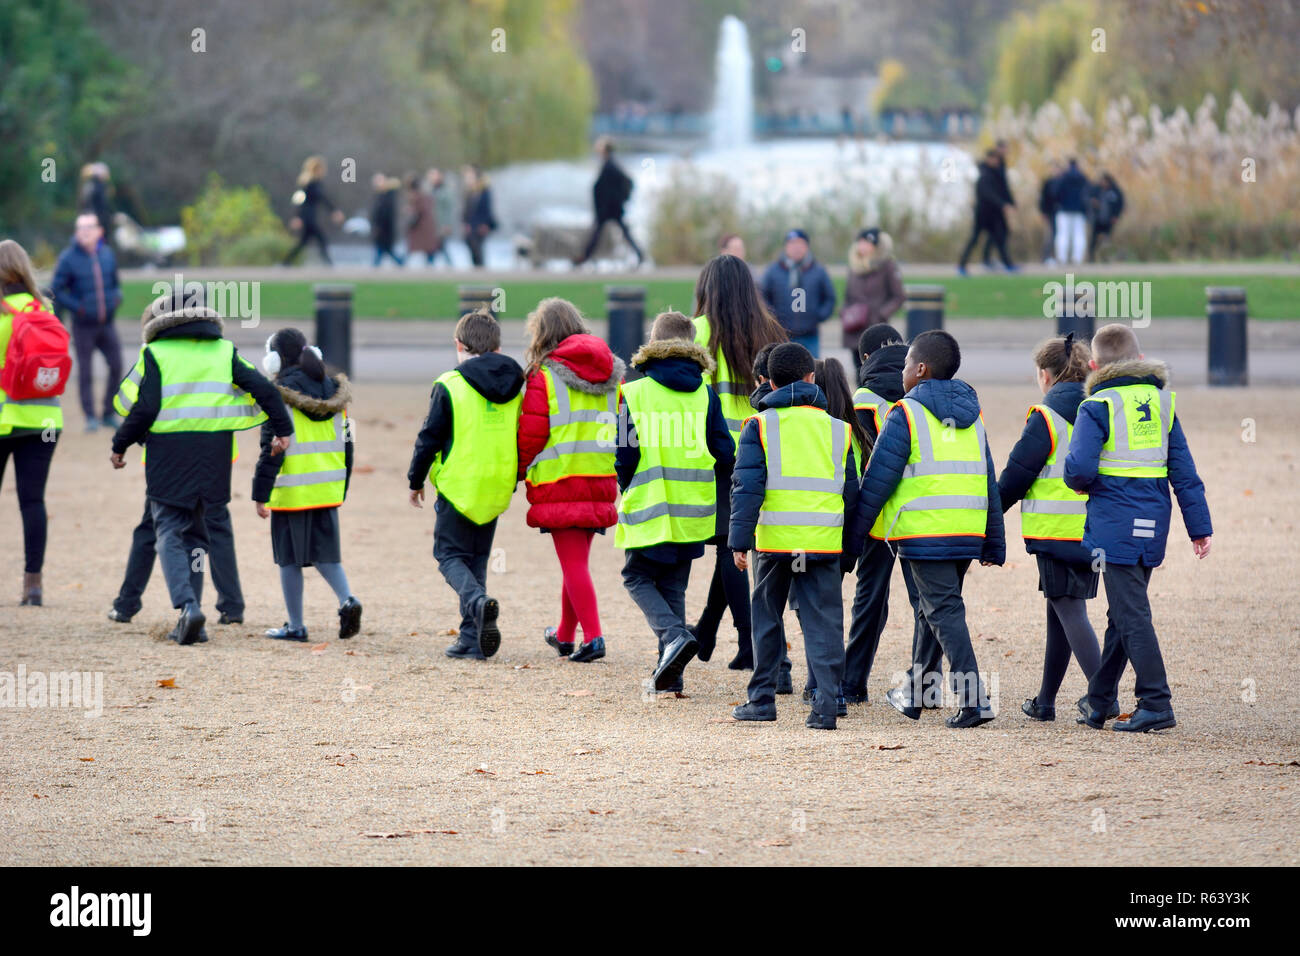 Primary school children in hi vis vests on a school trip in Horse Guards Parade, central London, England, UK. - Stock Image